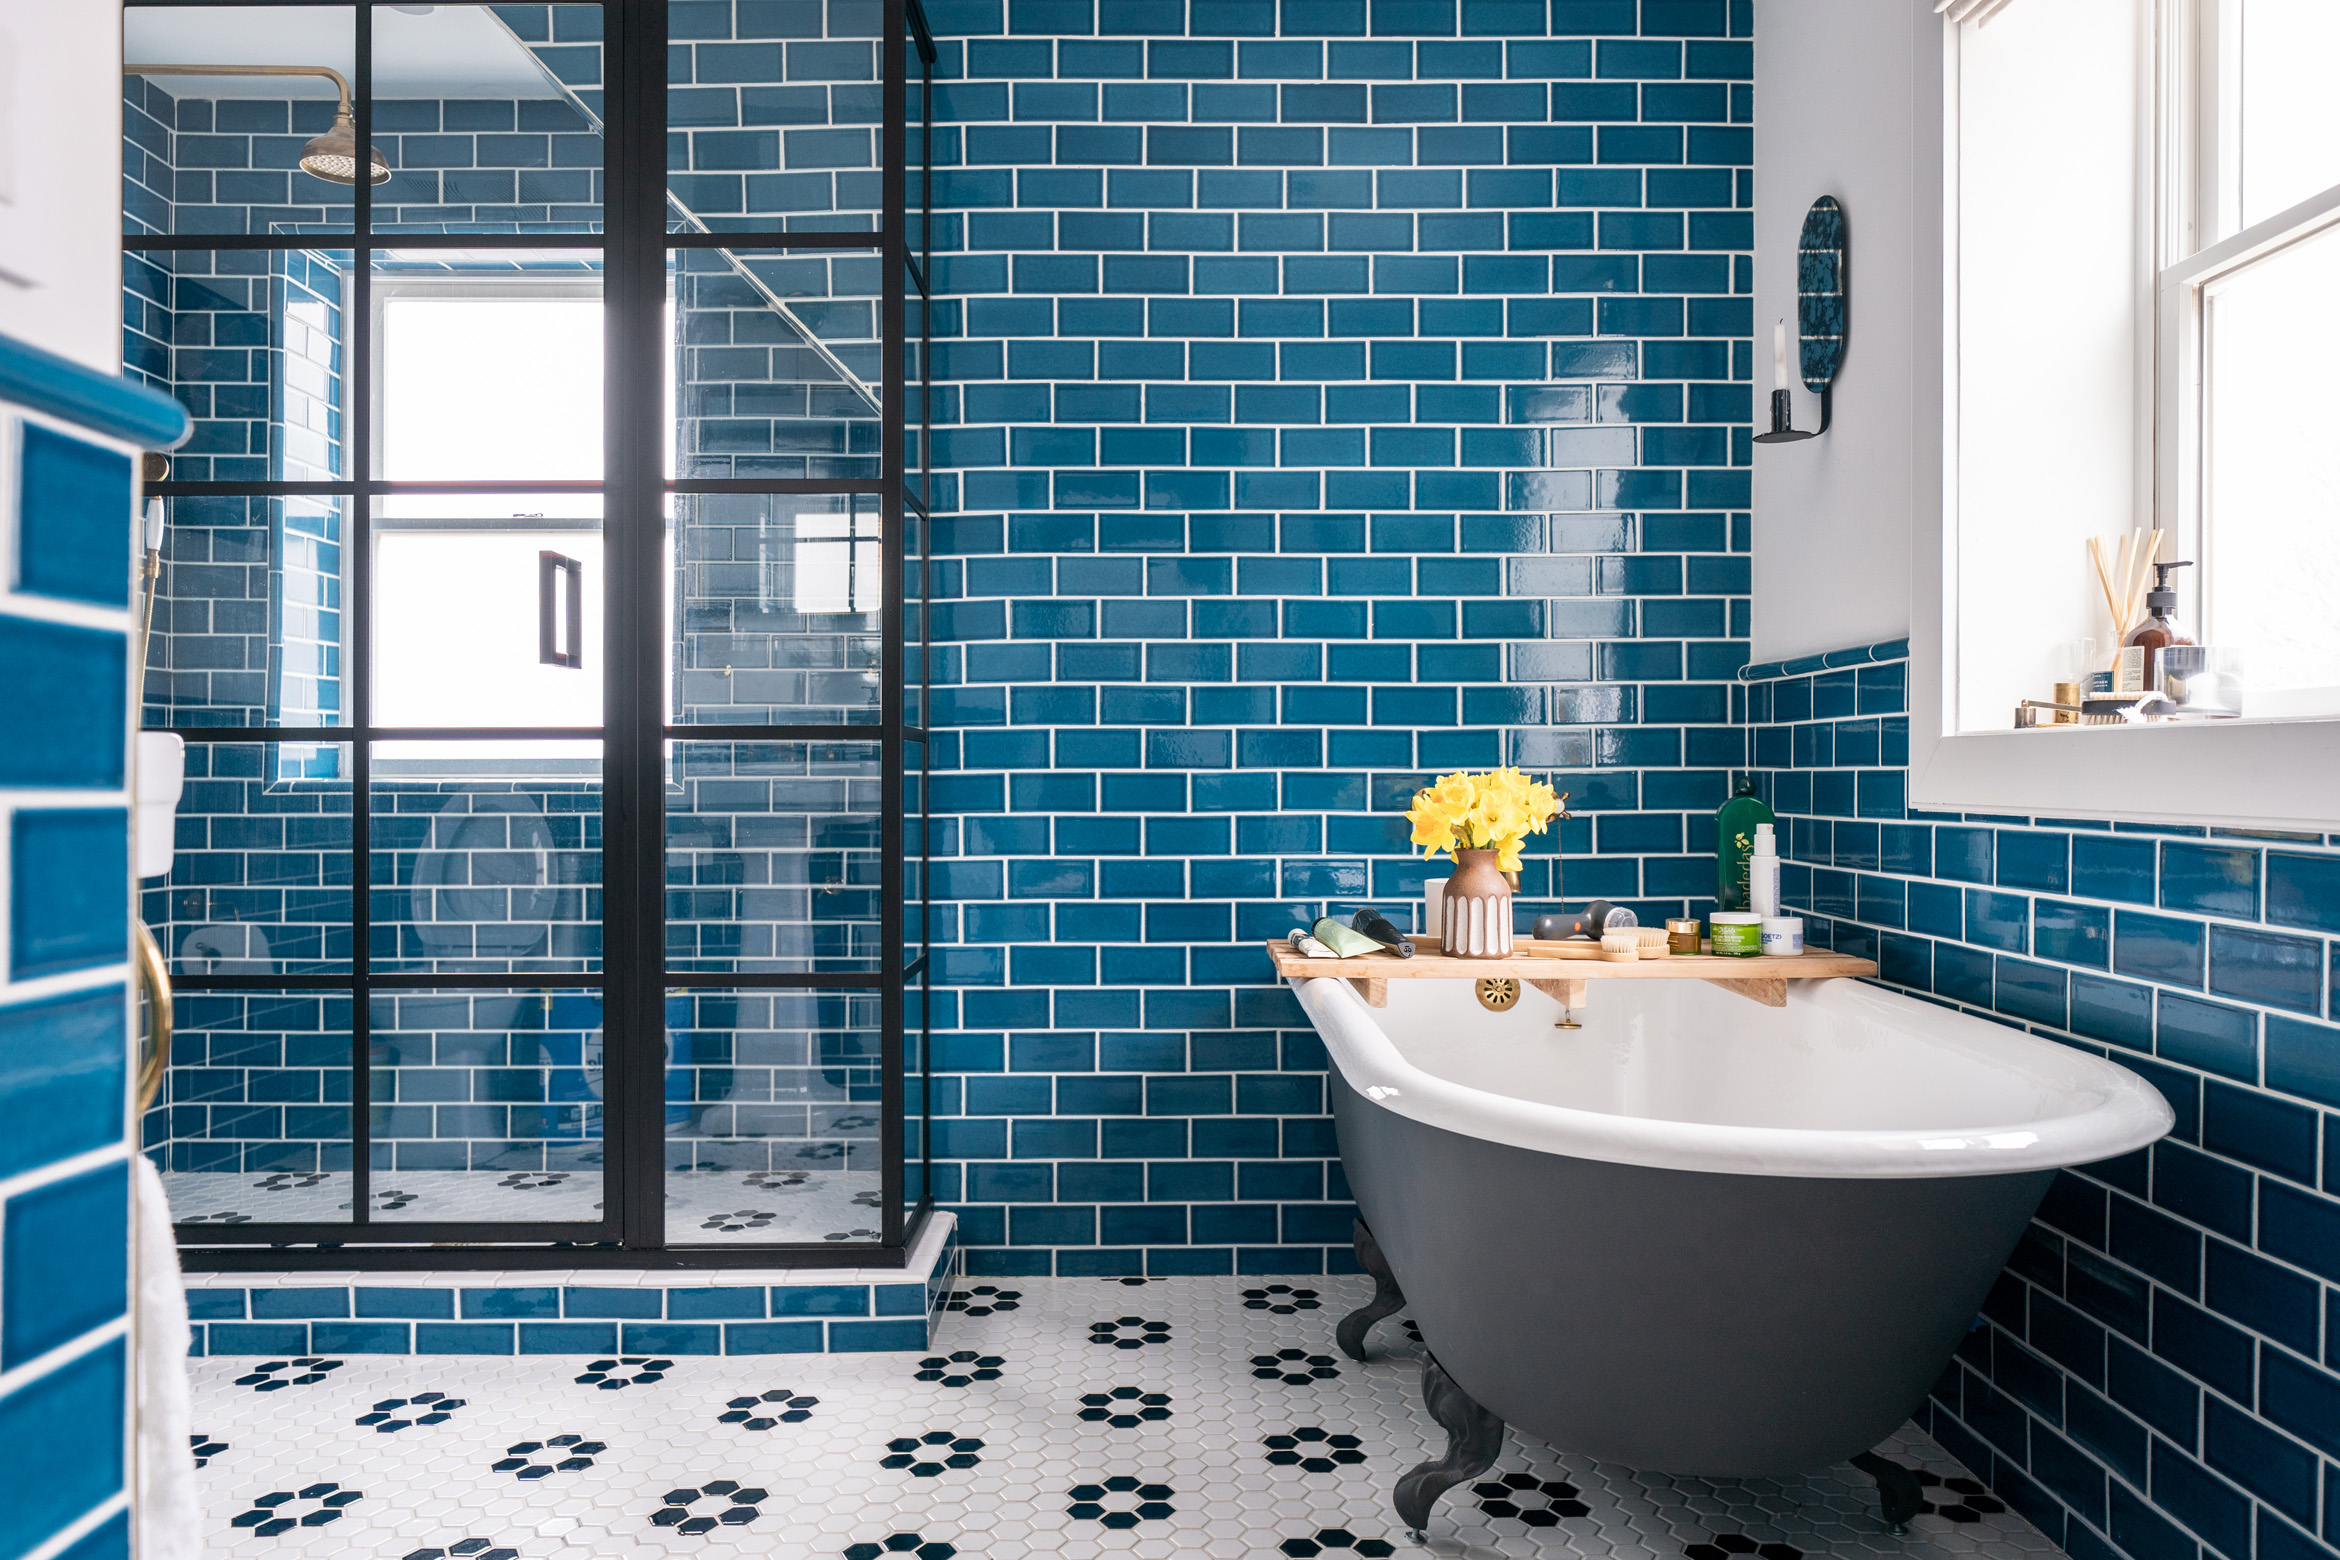 Ensuite Bathroom Before And After Bright Bazaar By Will Taylor